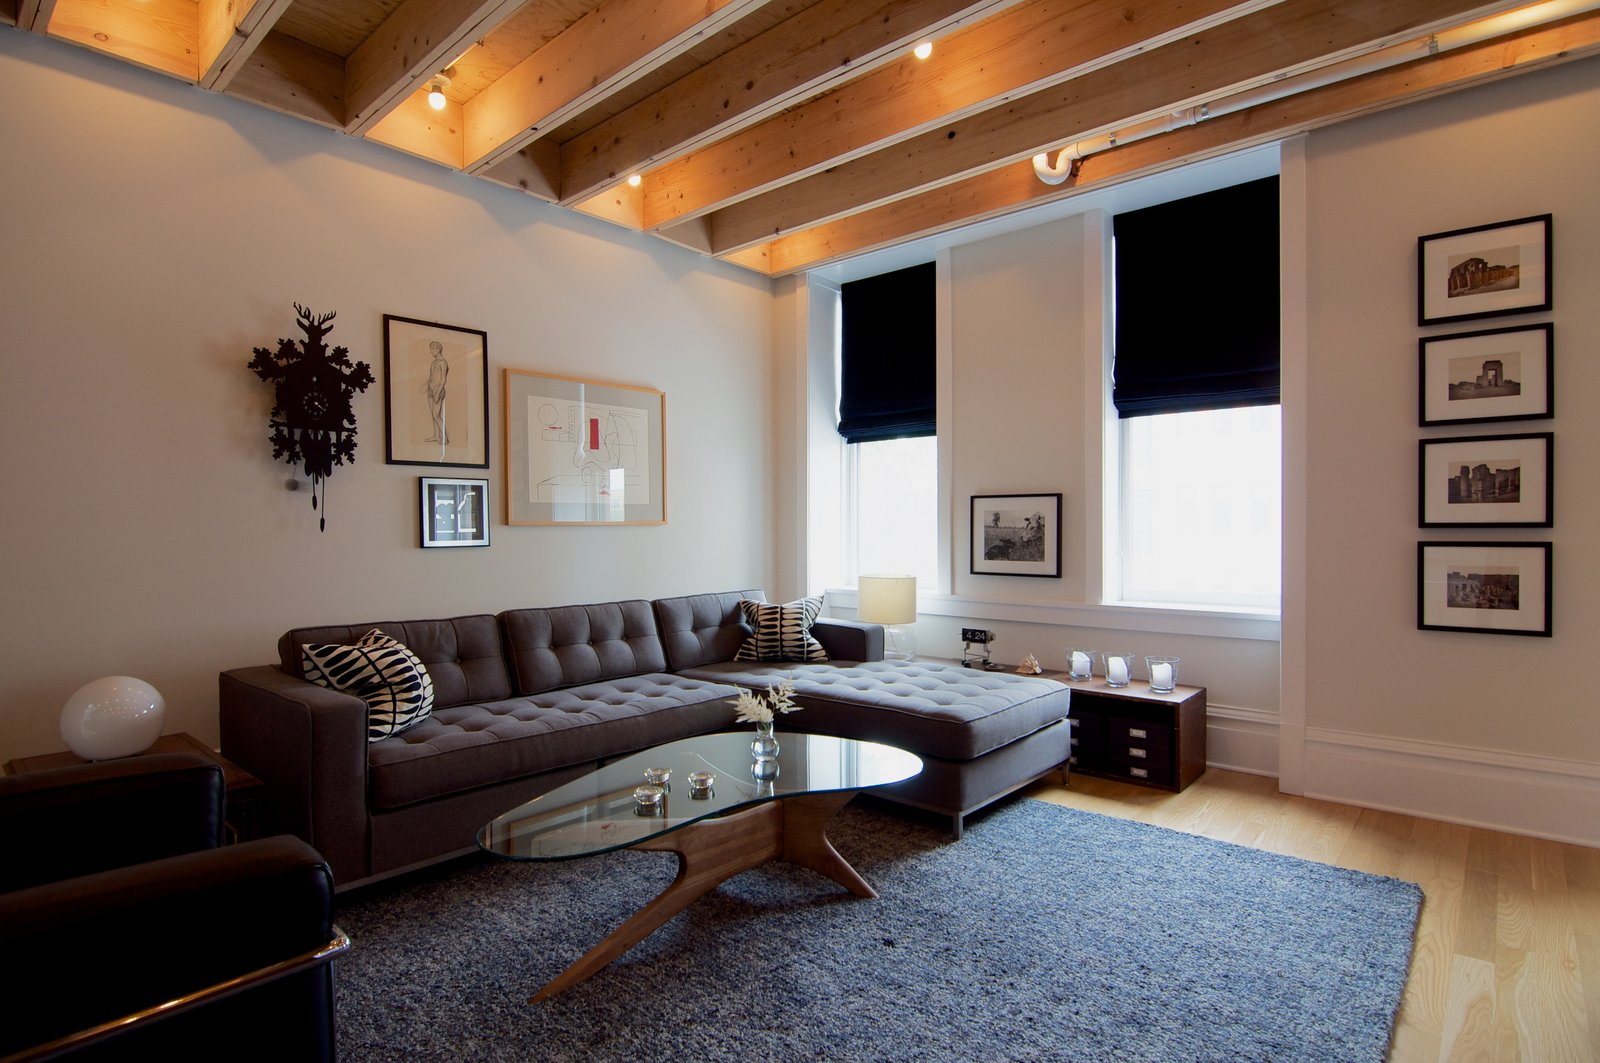 """It was a design priority that any modern interventions had an articulate edge or gap against the existing space,"" says Shively. As a result, he designed a subtle gap between the exposed beam ceiling and the existing walls. The living room also features a Gus* Modern sofa and Adrian Pearsall coffee table. A Chicago Renovation Taps Into its Attic to Almost Double its Square Footage - Photo 5 of 8"